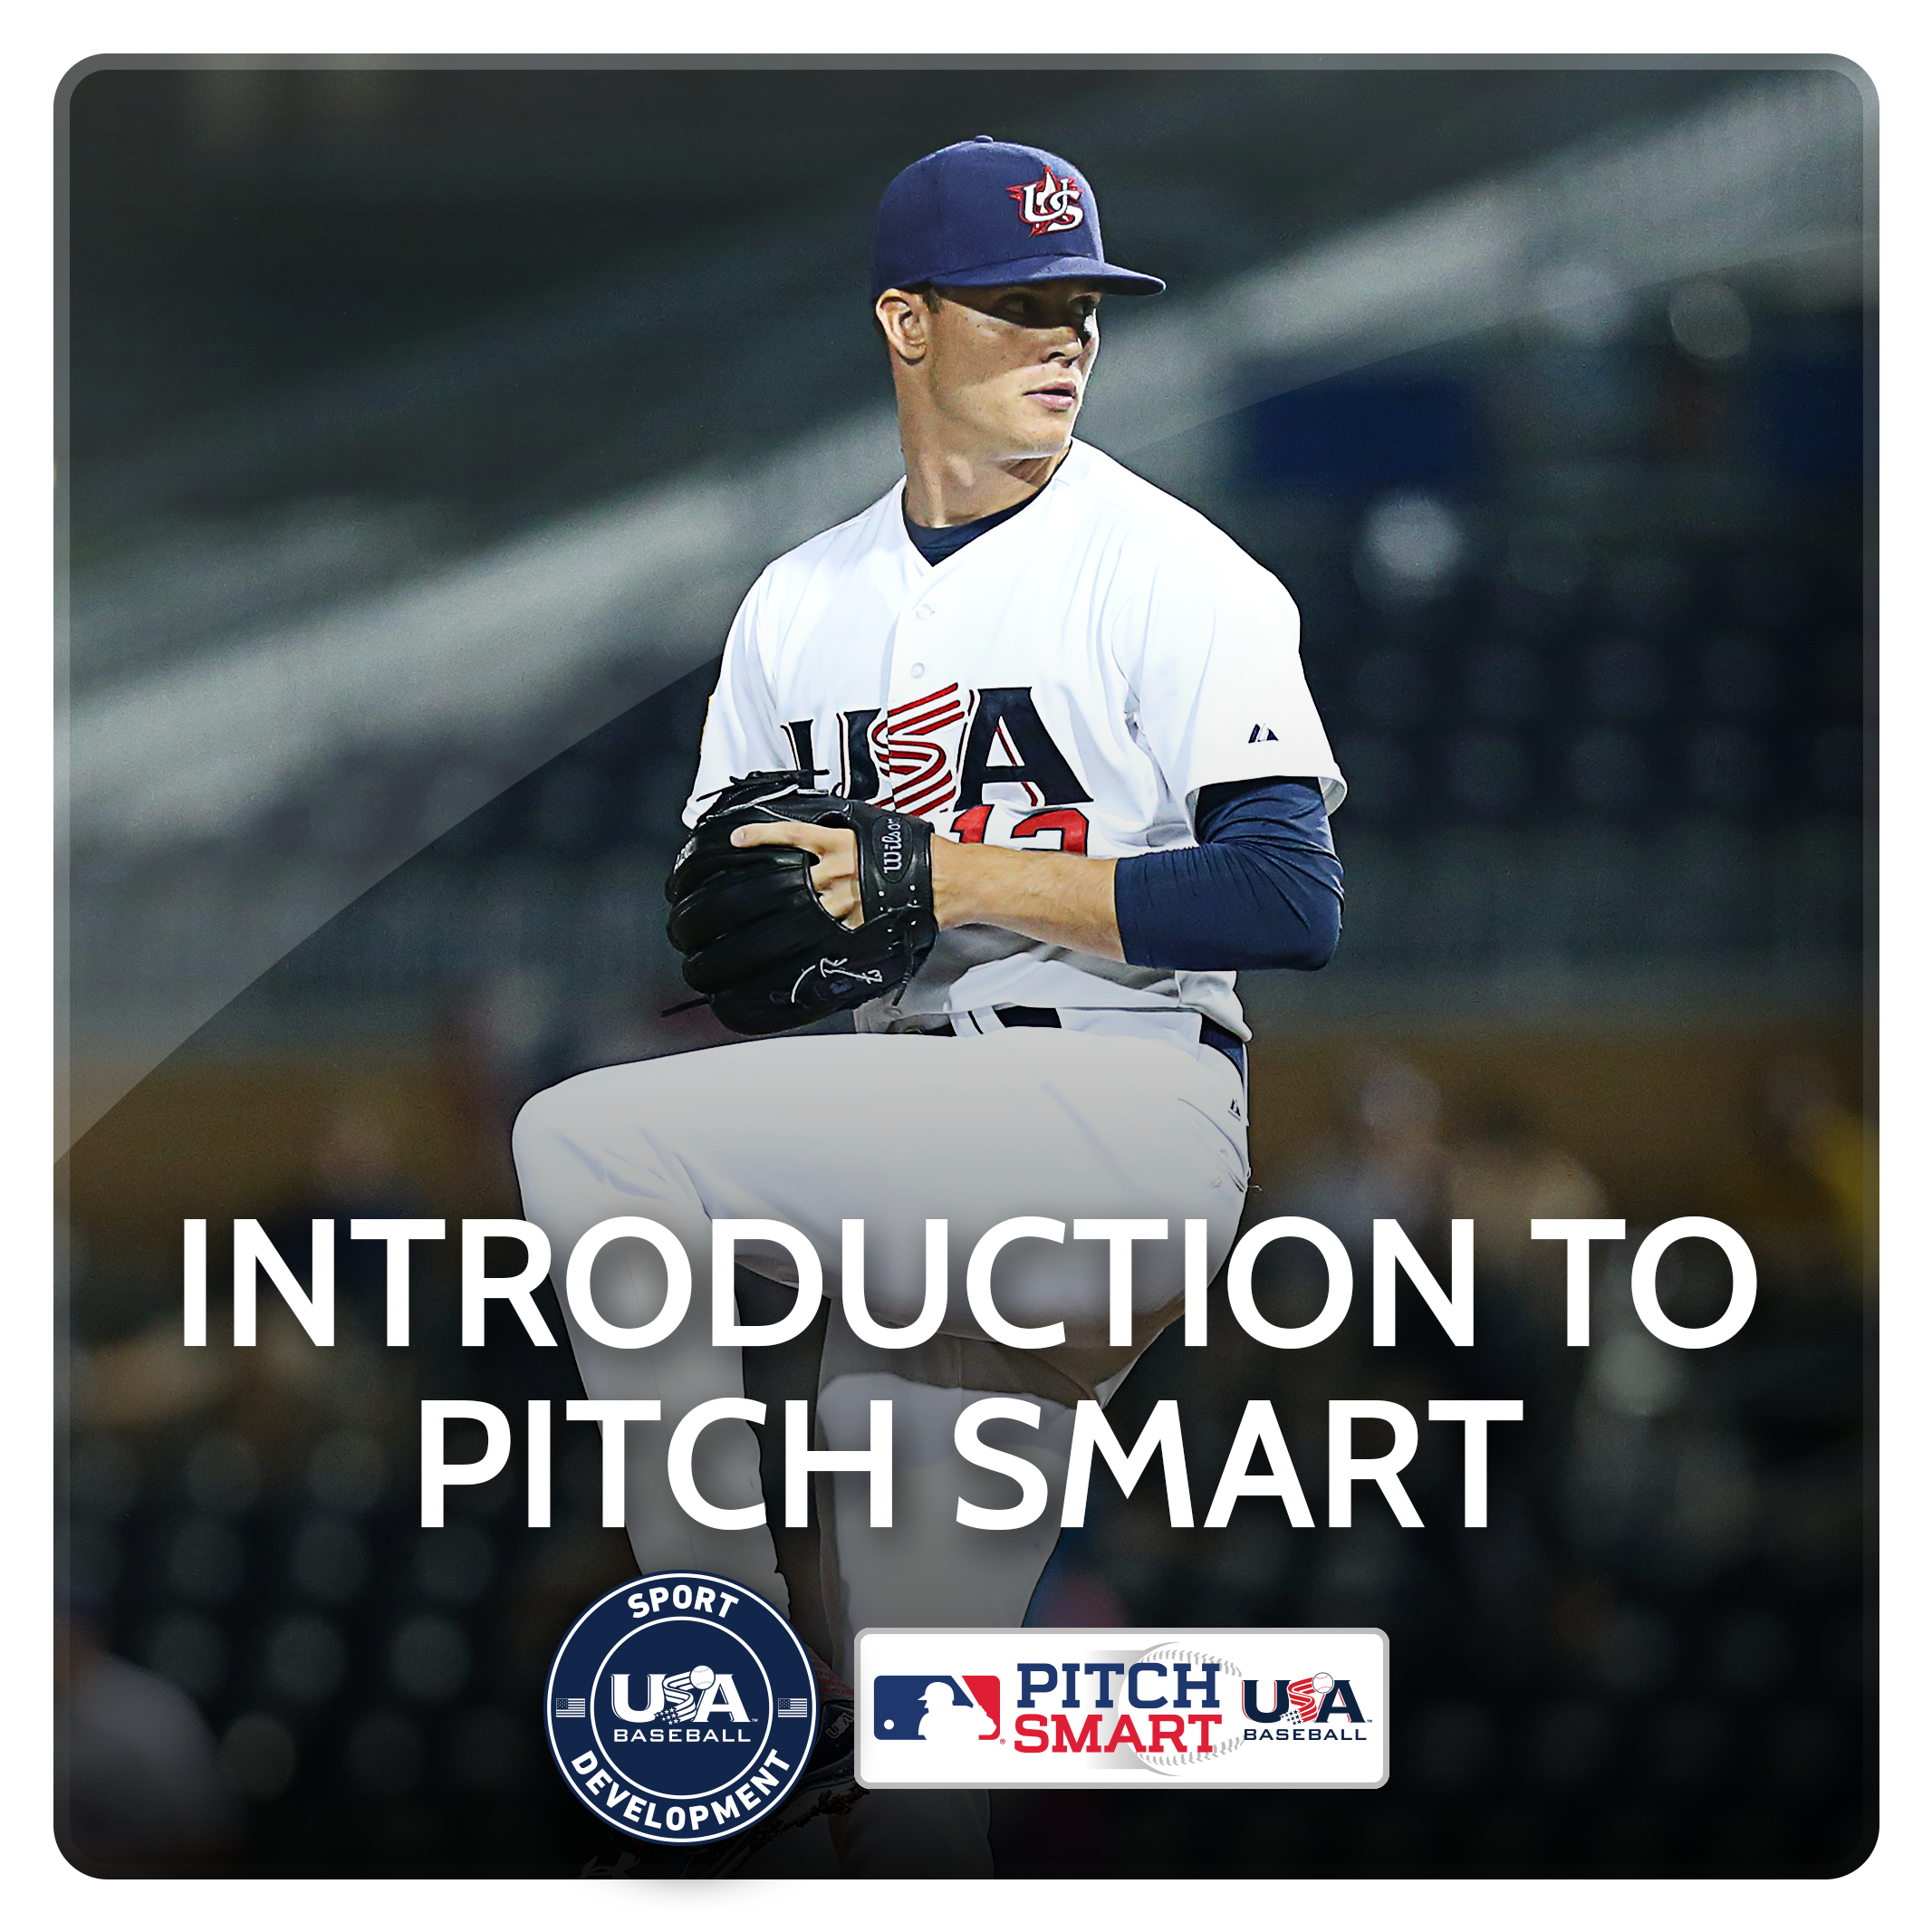 Introduction to Pitch Smart